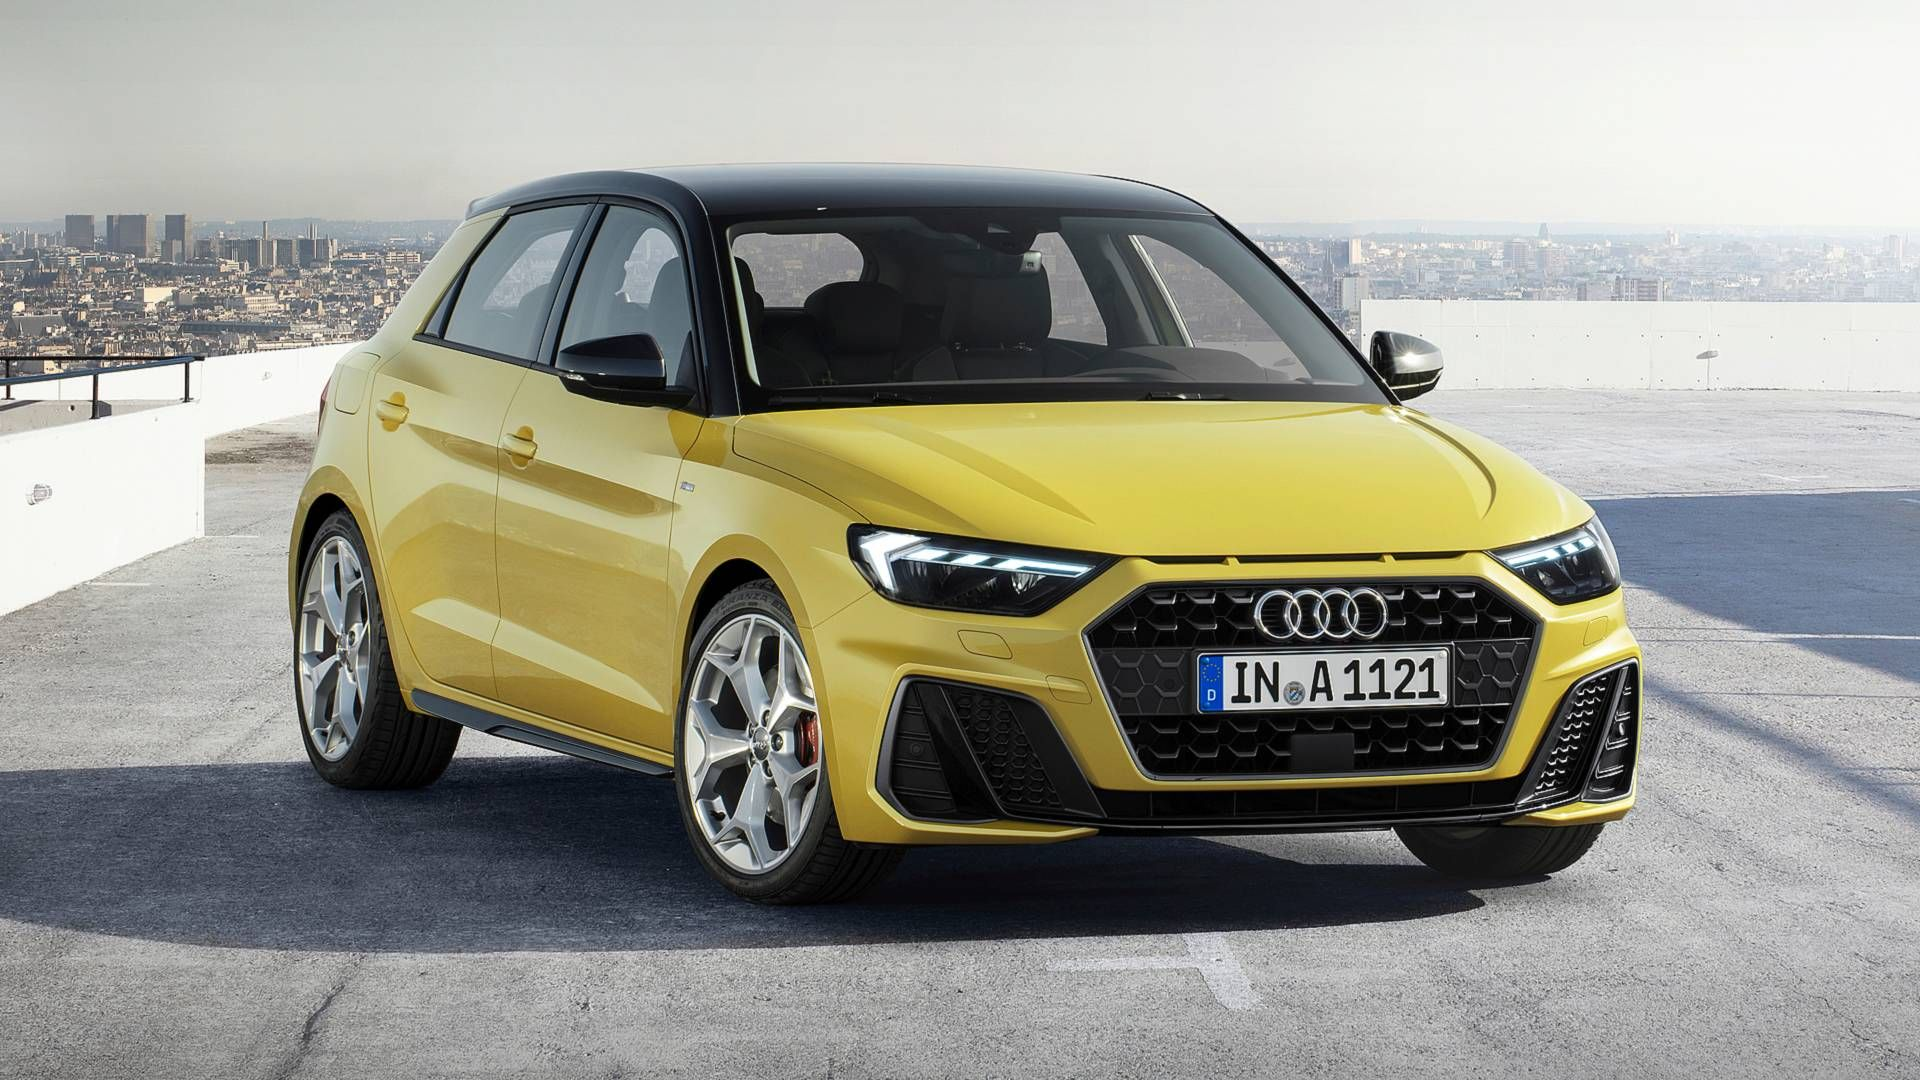 The Angry New Audi A1 Is Sharper More Intense And Full Of Tech